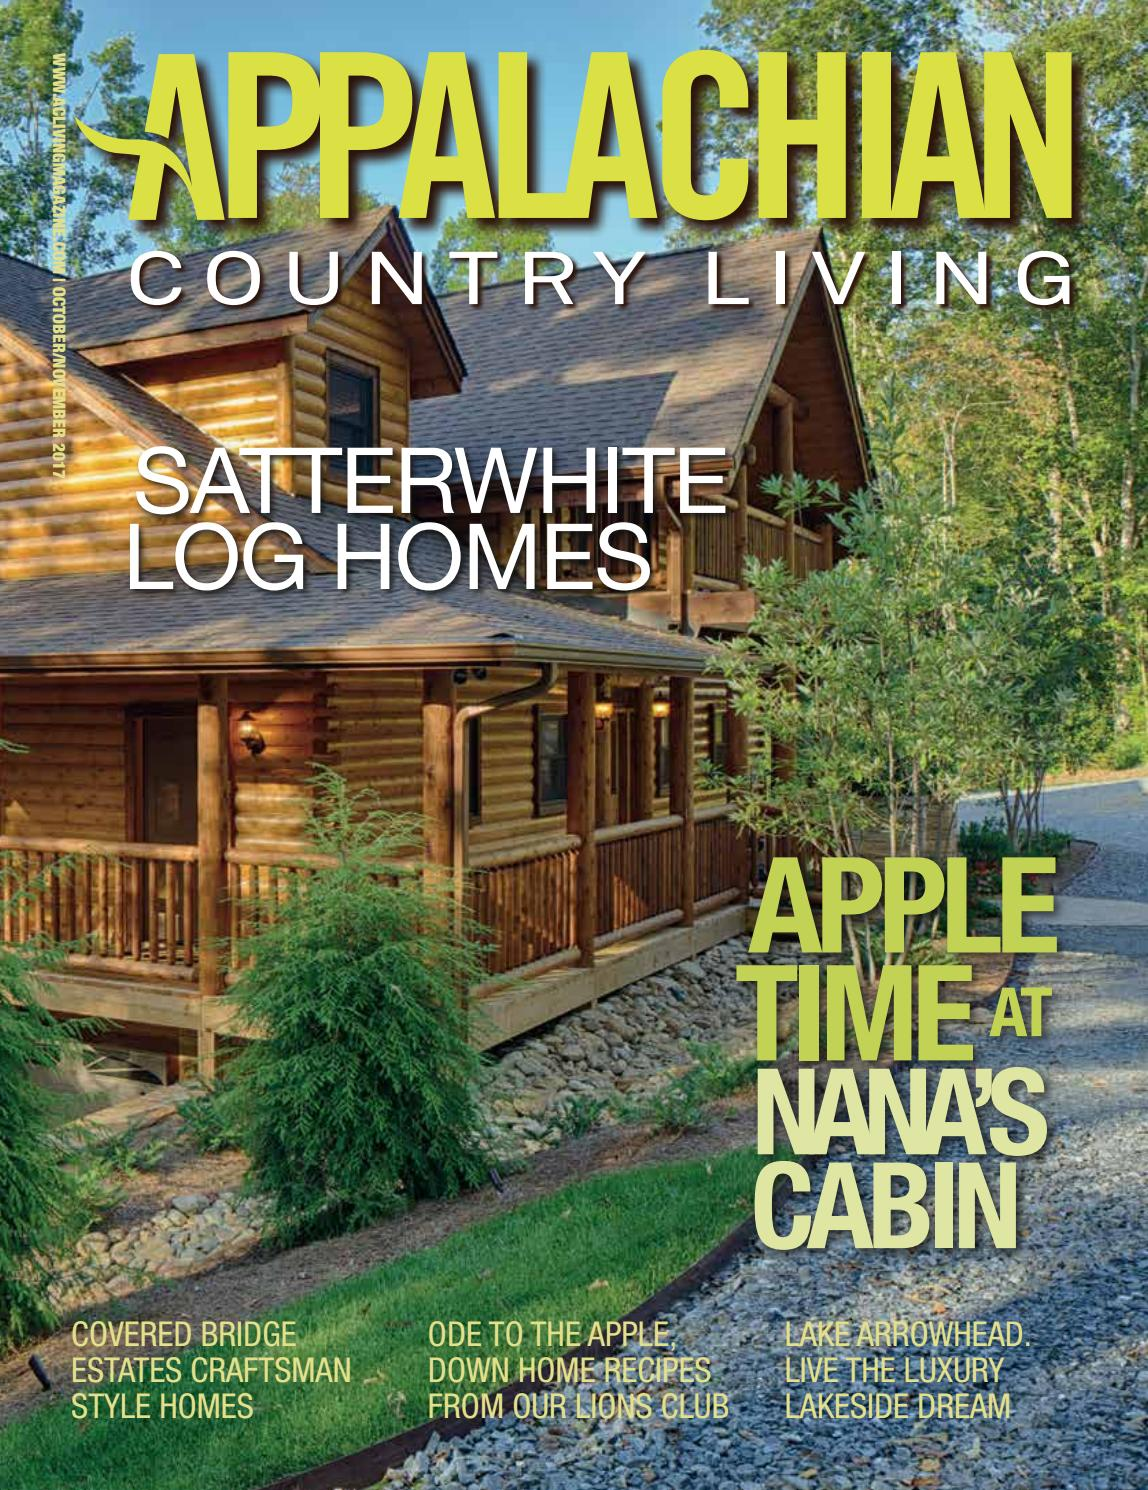 Appalachian country living magazine october november 2017 for Where is the horseshoe in country living october 2017